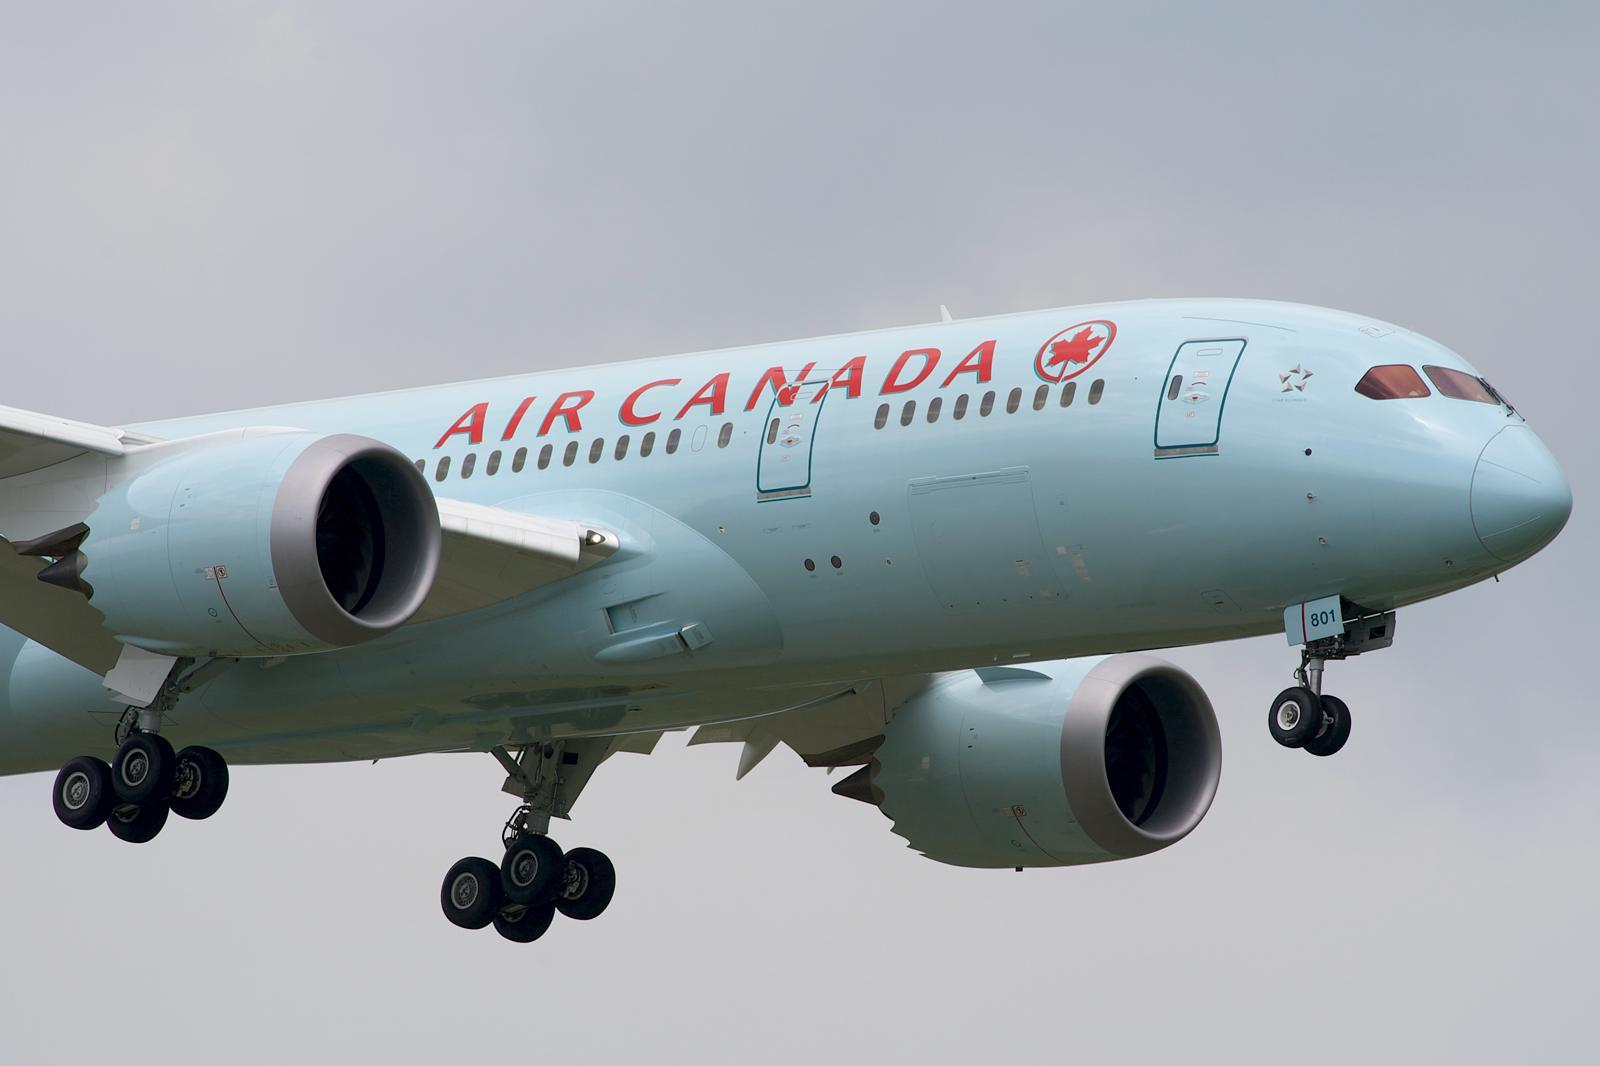 Canadian Man Feels A New Kind Of 'Chronic Pain' After Air Canada Refuses To Let Him Fly With Medical Cannabis